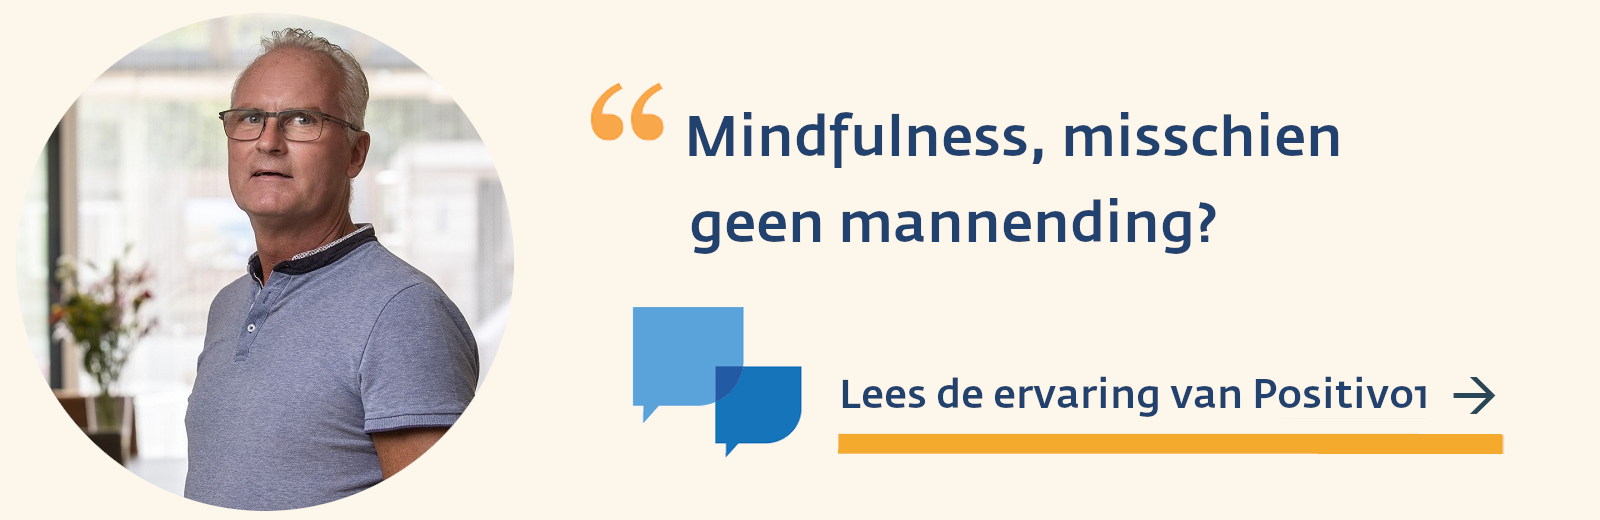 Quote over mindfulness